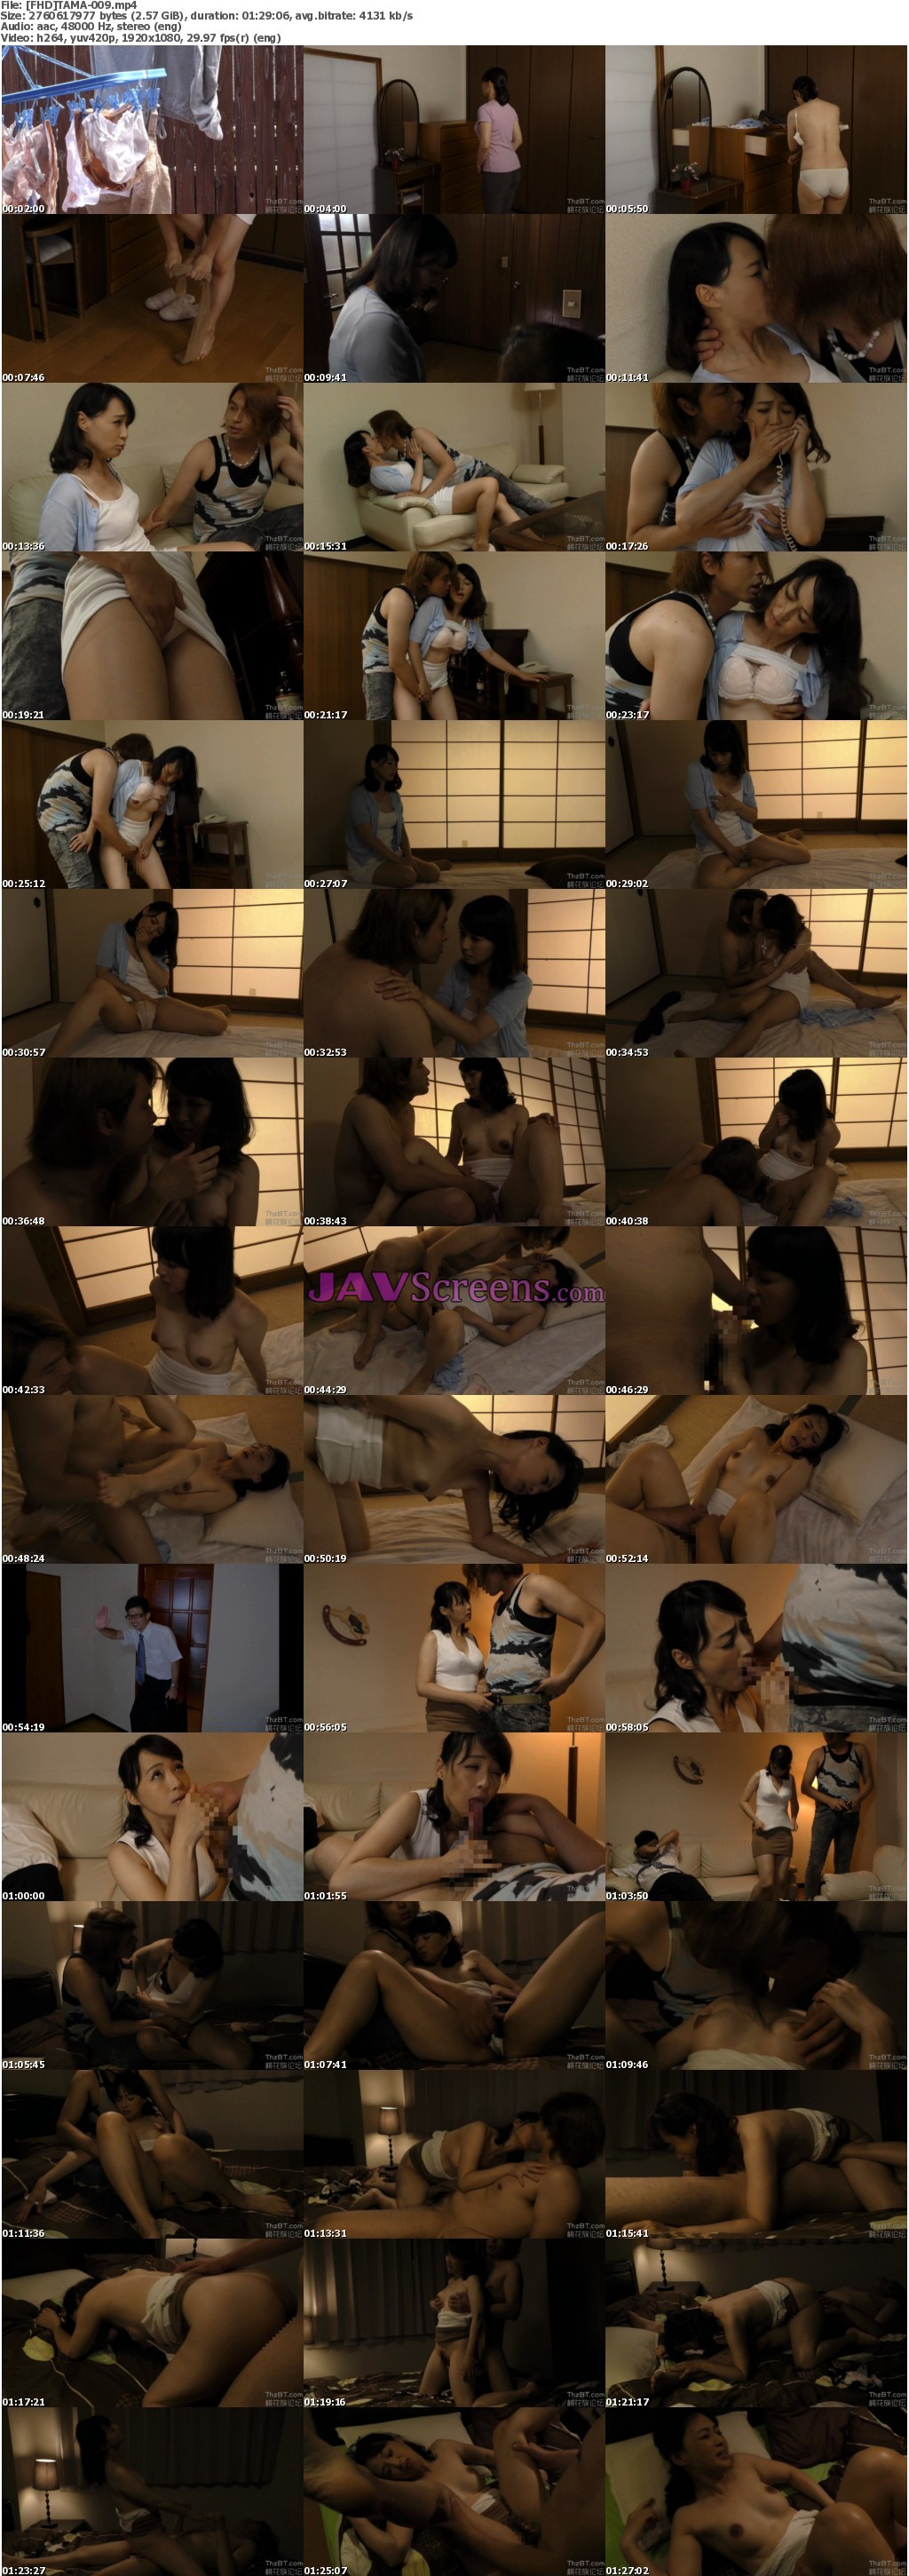 TAMA-009.jpg - JAV Screenshot